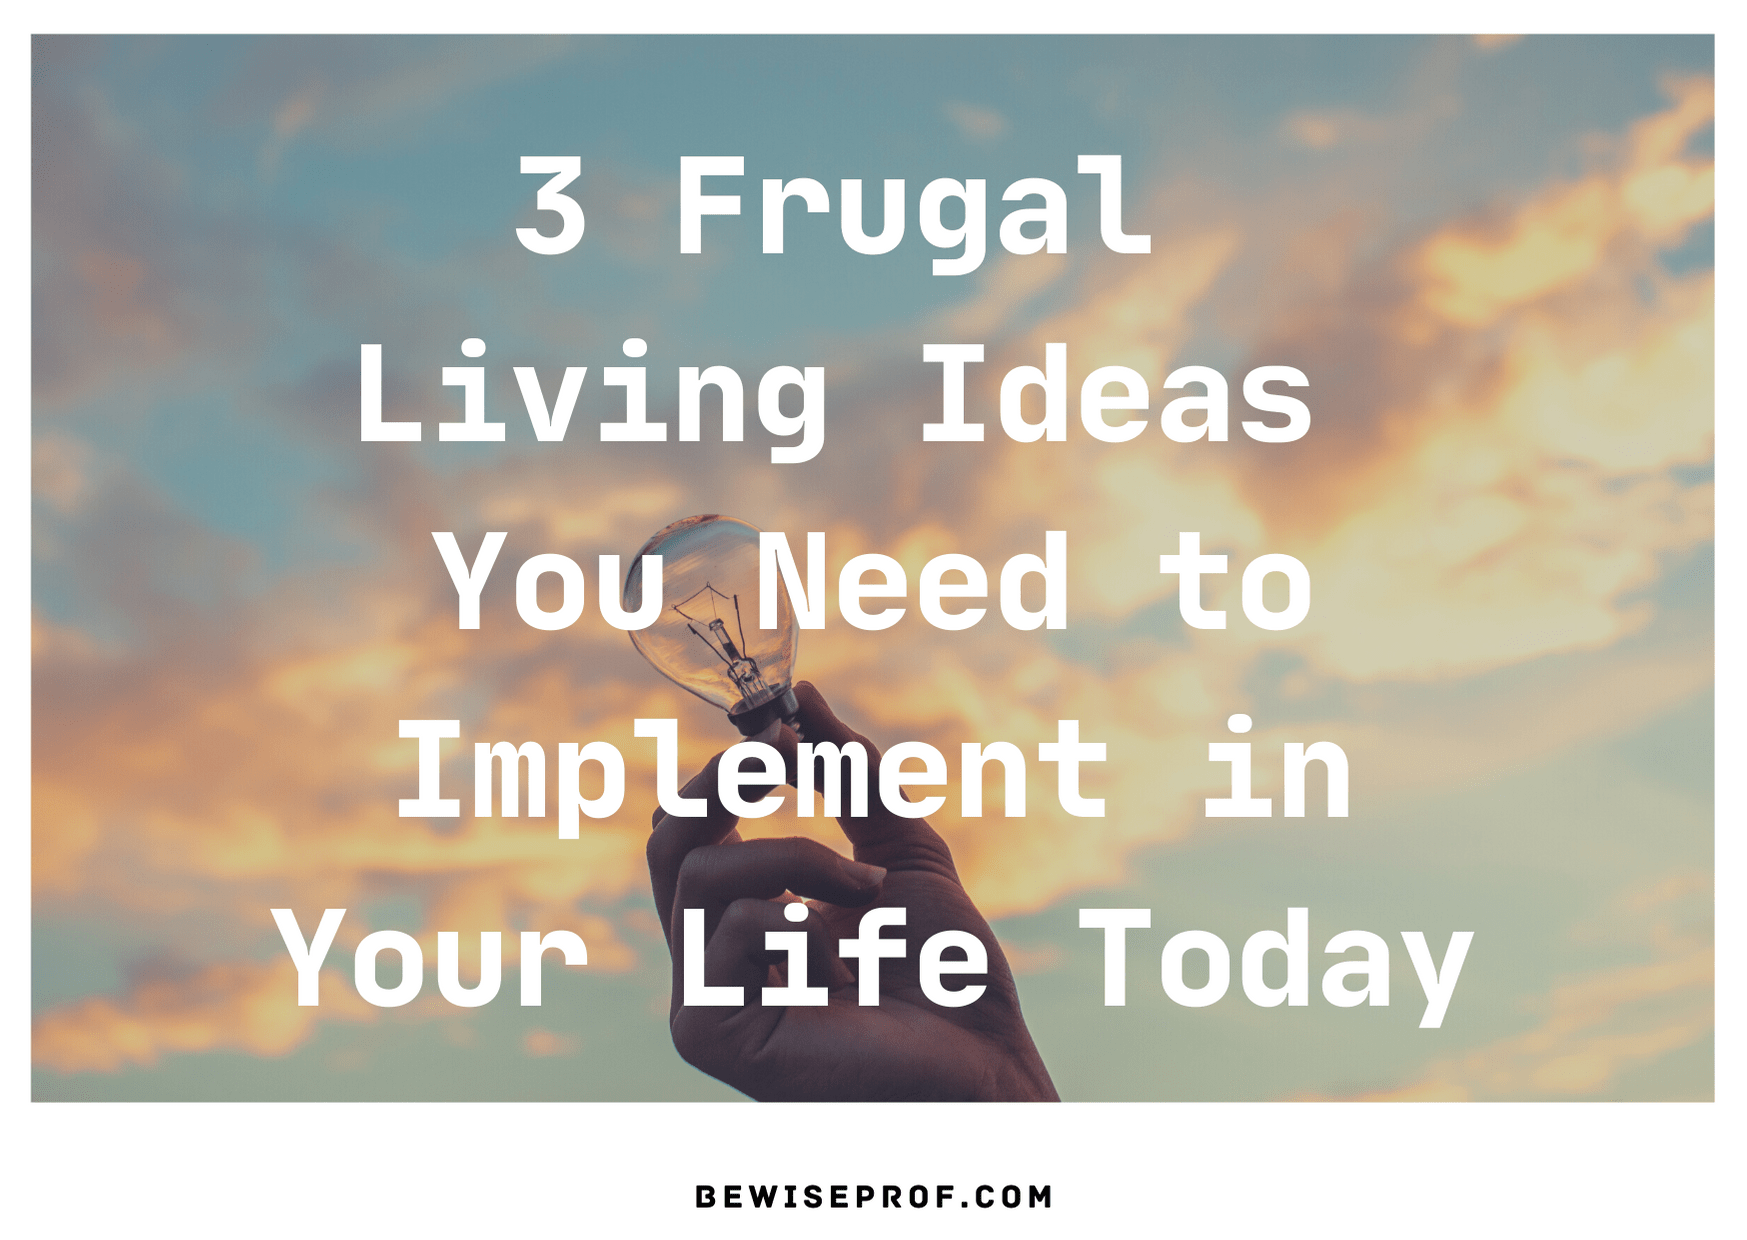 3 Frugal Living Ideas You Need to Implement in Your Life Today